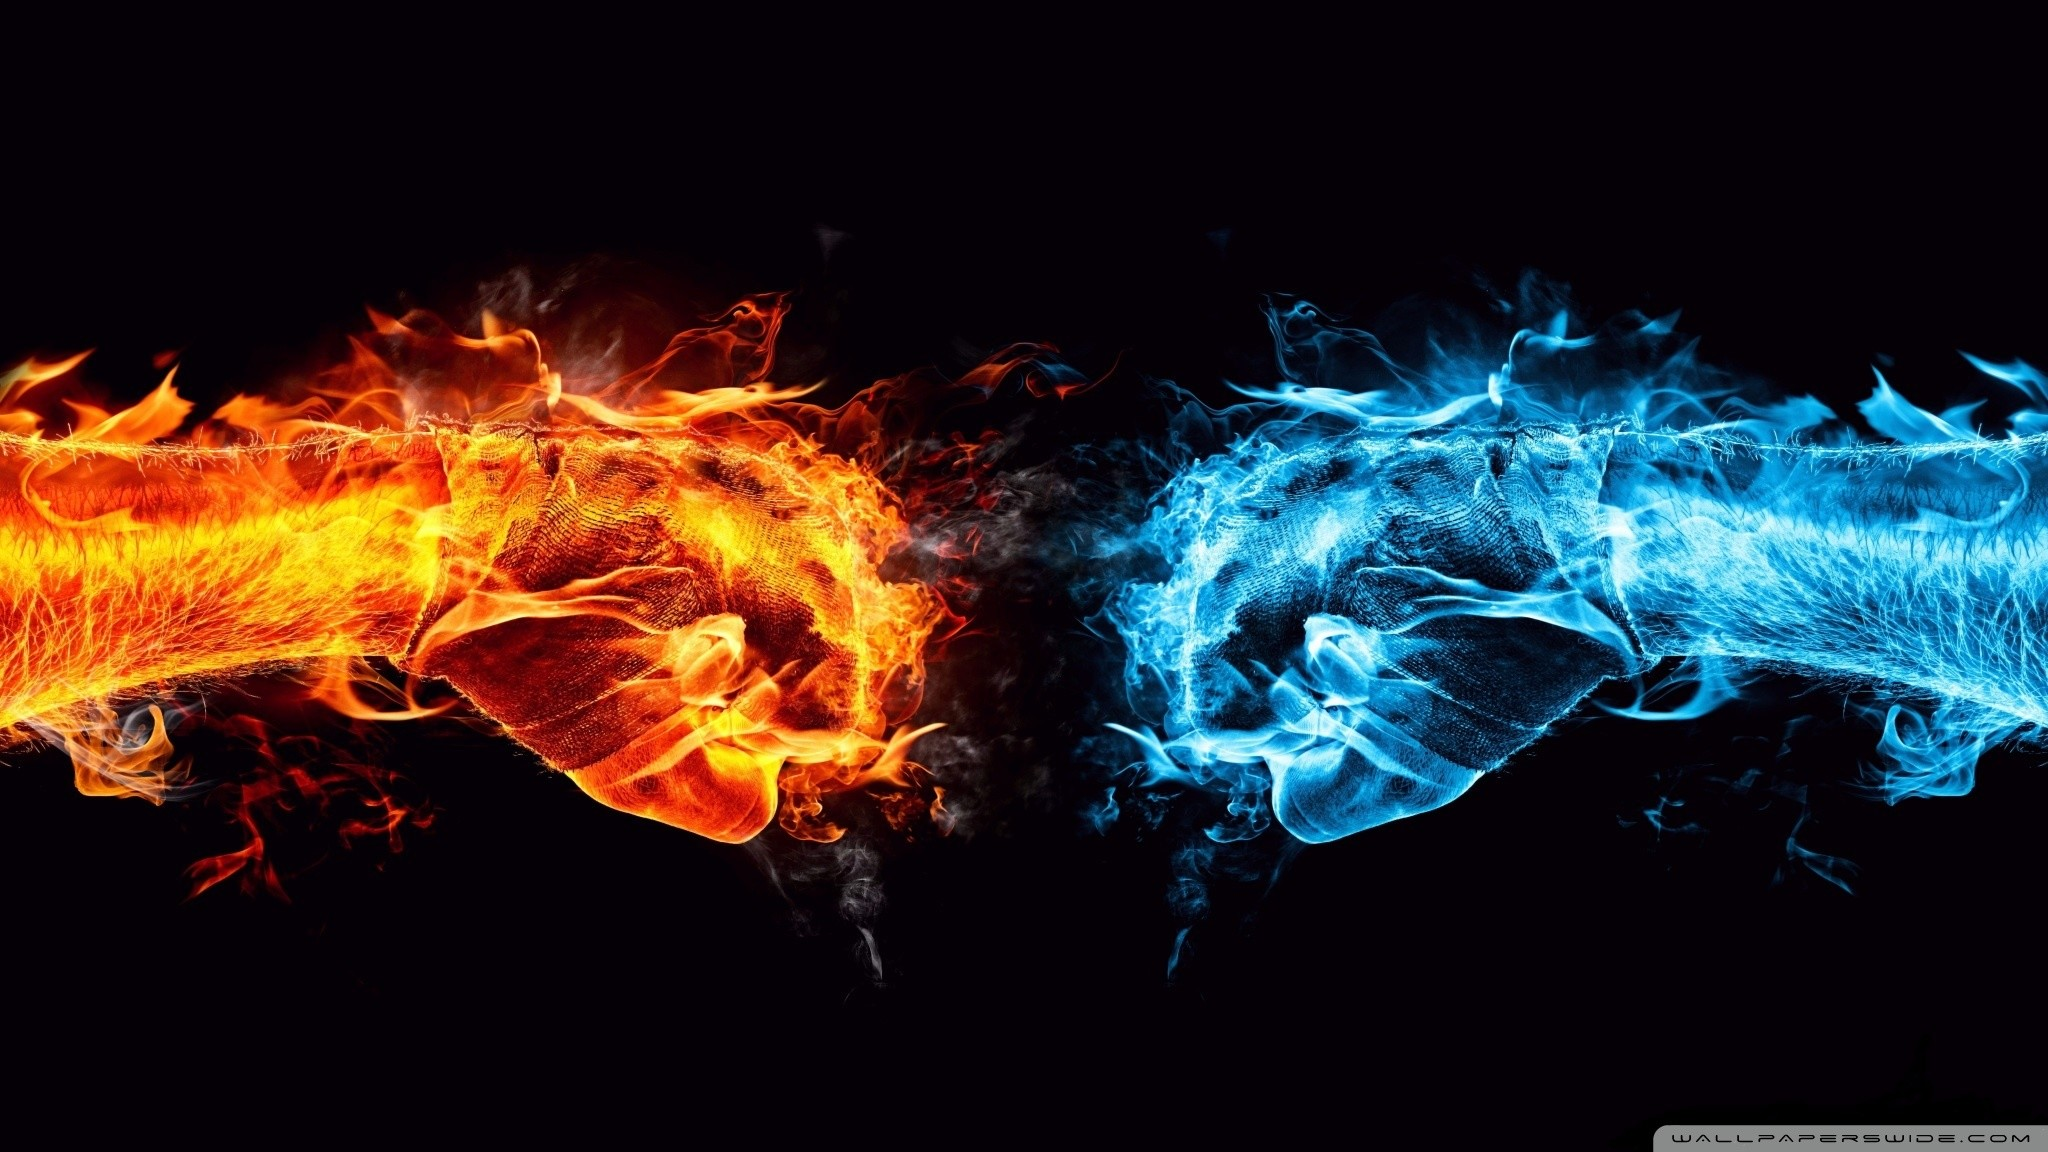 2048x1152 Fire And Ice Awesome Photo | 4288903 Fire And Ice Wallpapers,